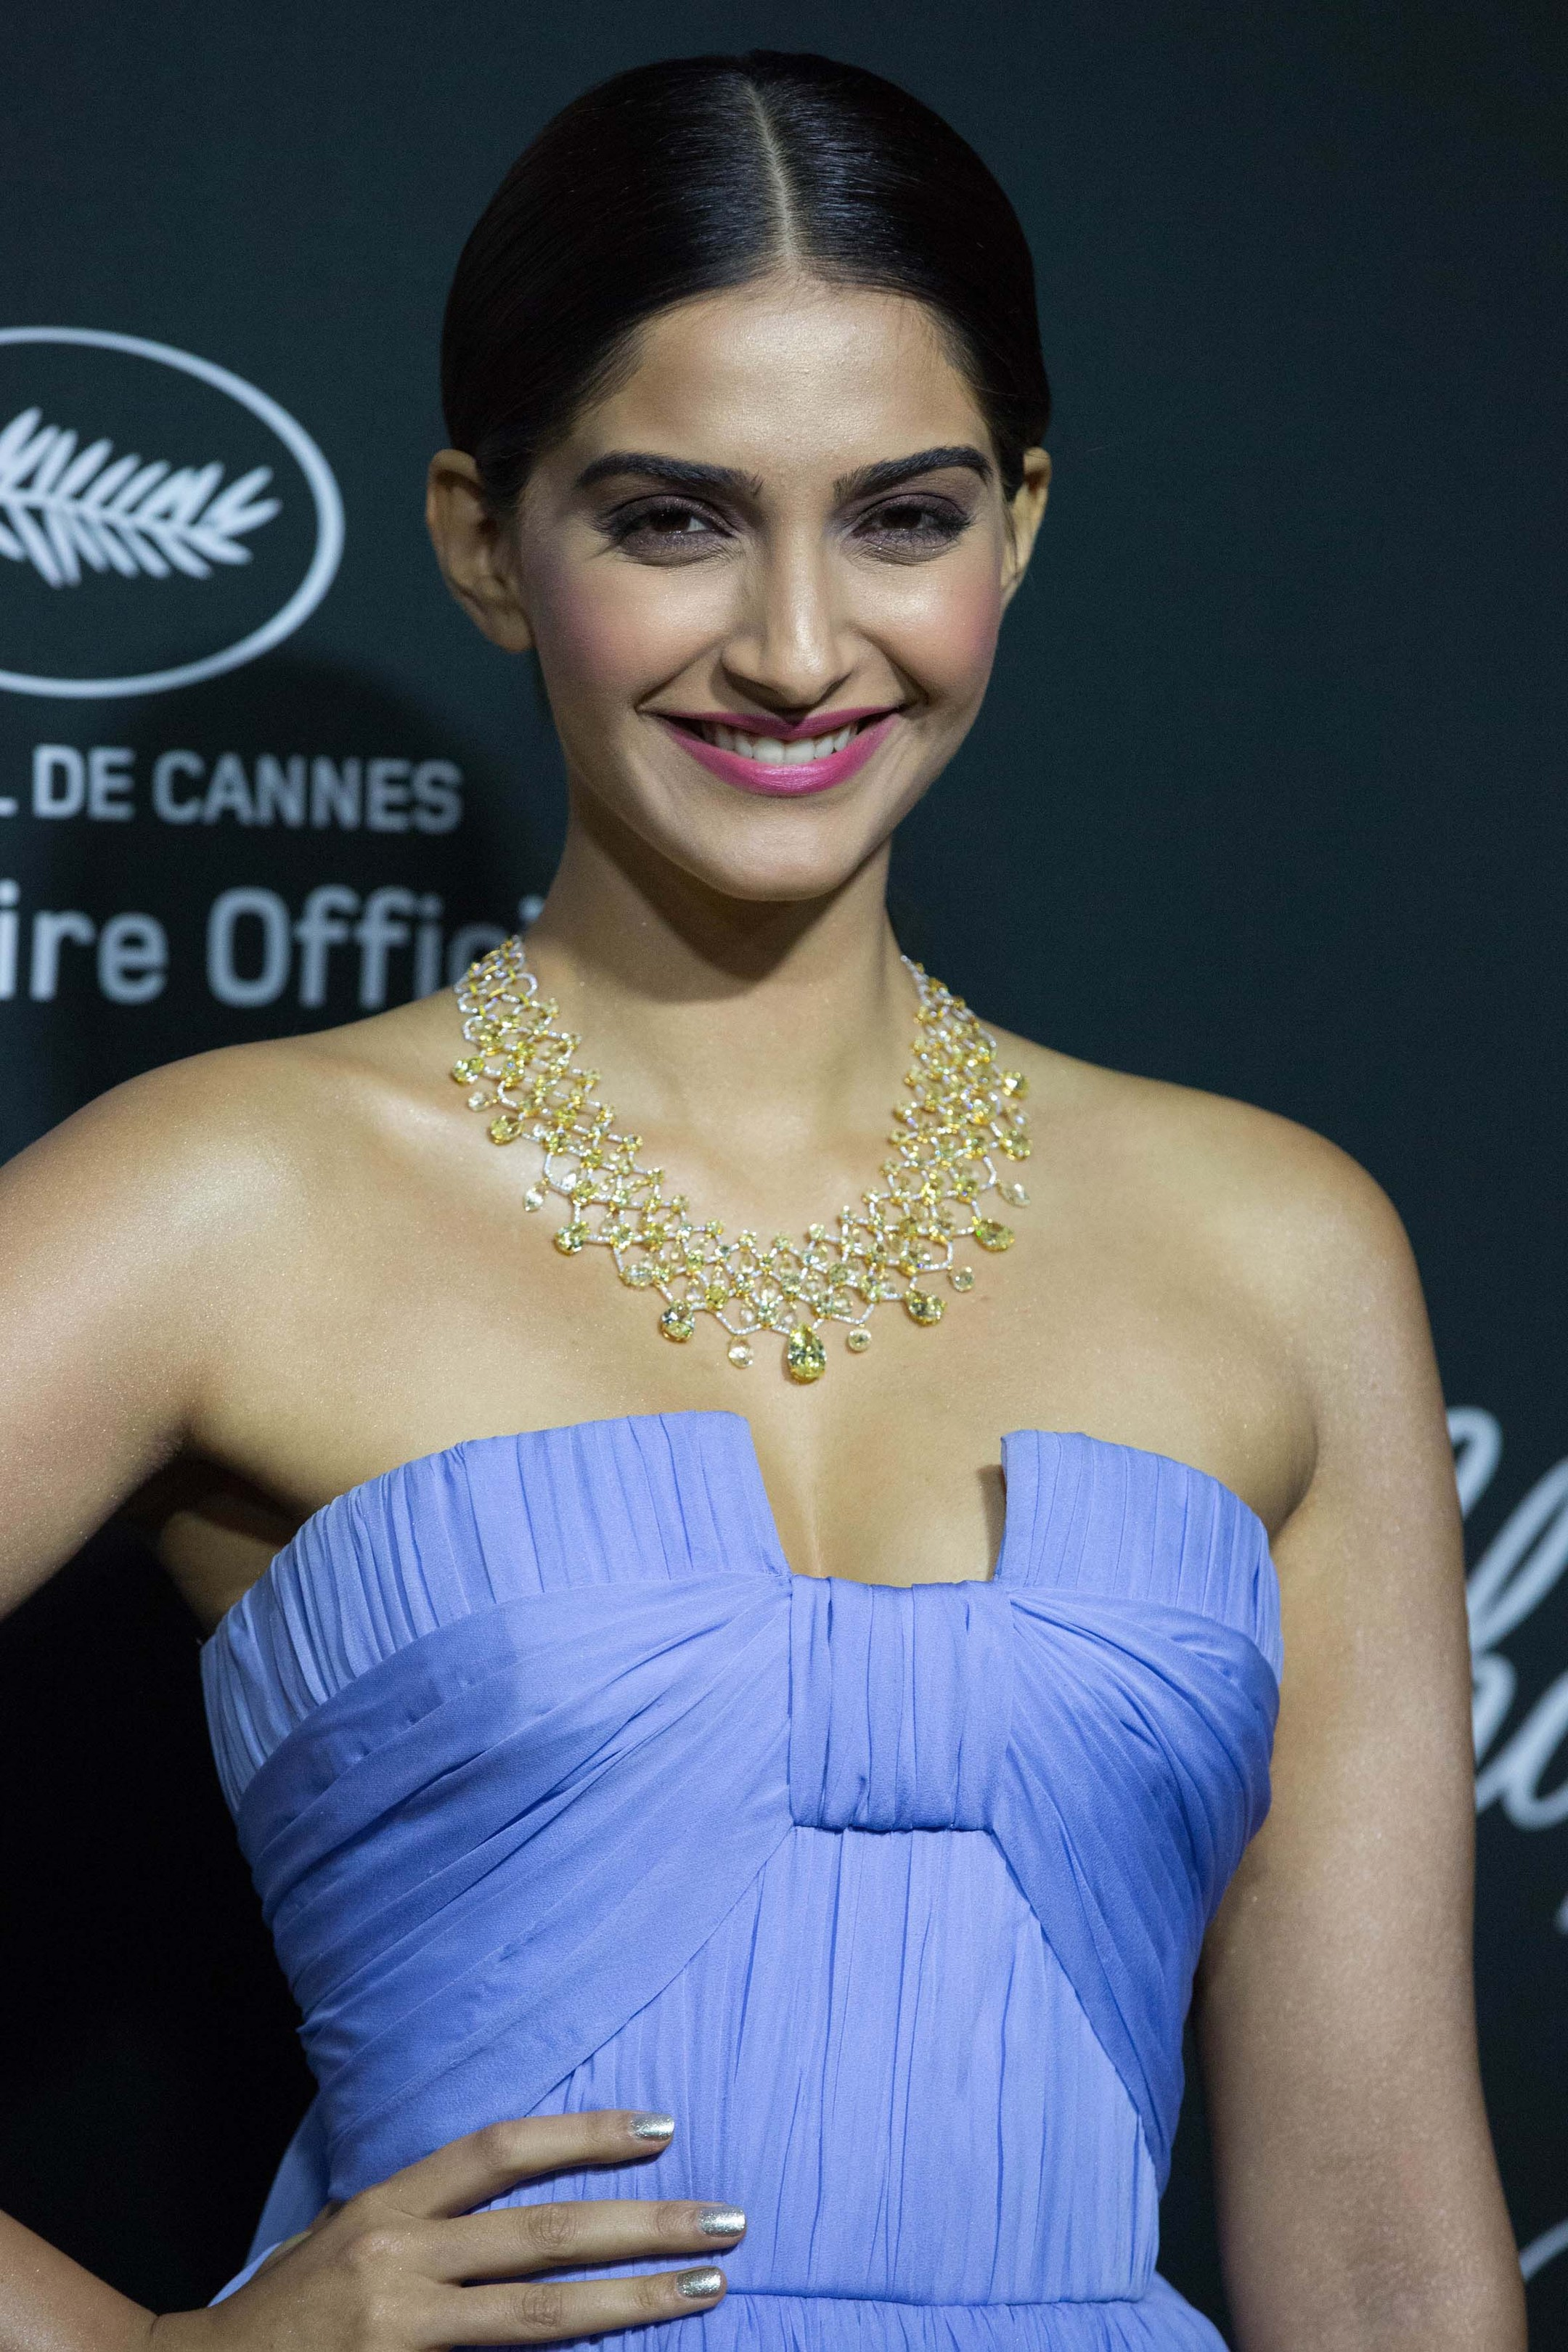 Sonam Kapoor dazzled at Chopard's Backstage party in a lilac chiffon dress and a Chopard yellow and white diamond high jewellery necklace